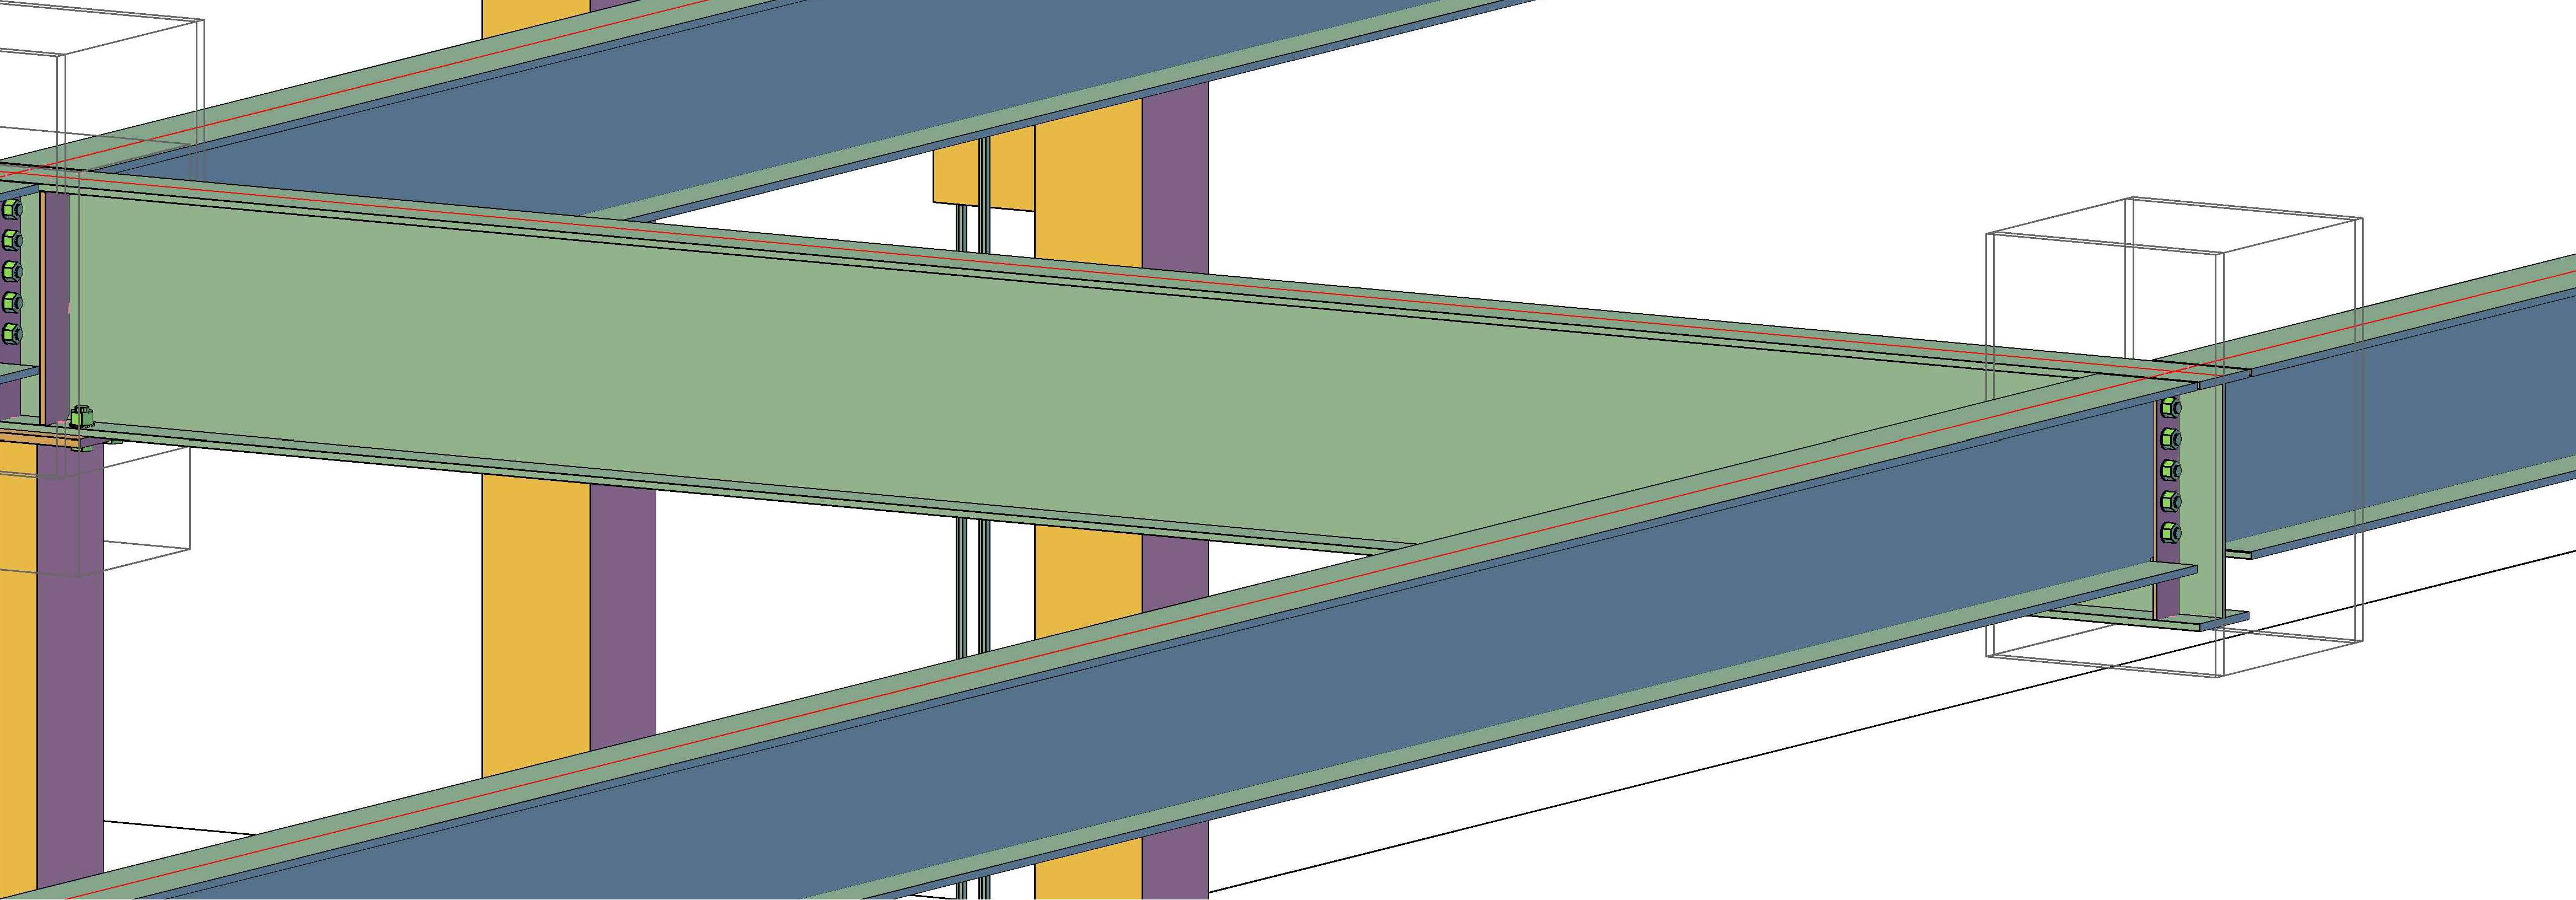 Autodesk Advance Steel detailing software model of solar canopy